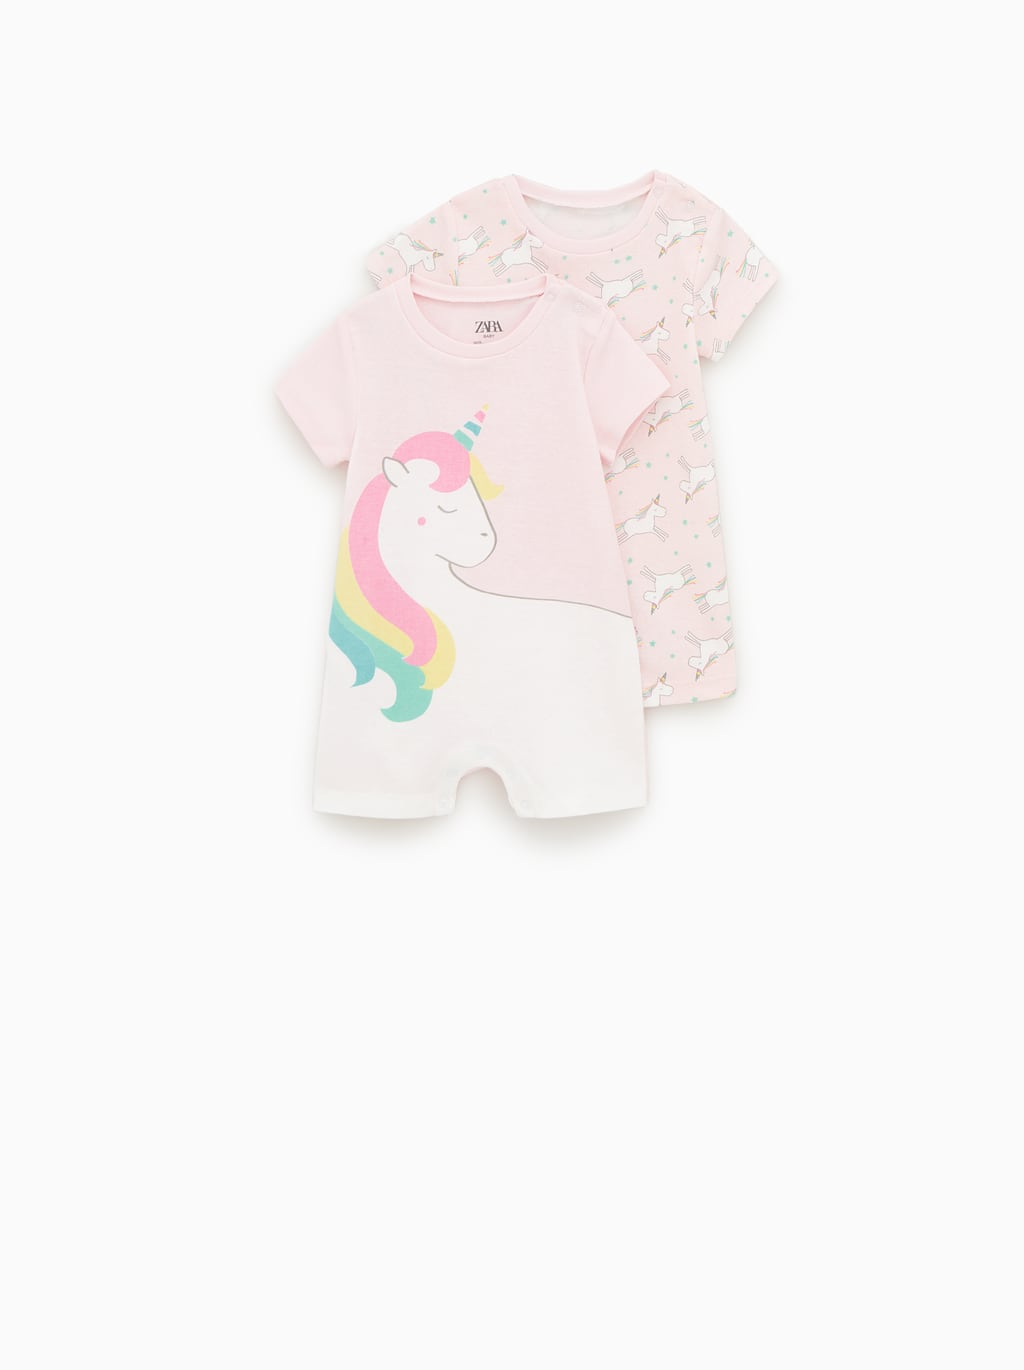 ab4163aa2 2-PACK OF UNICORN SLEEPSUITS-View All-UNDERWEAR AND PYJAMAS-BABY ...